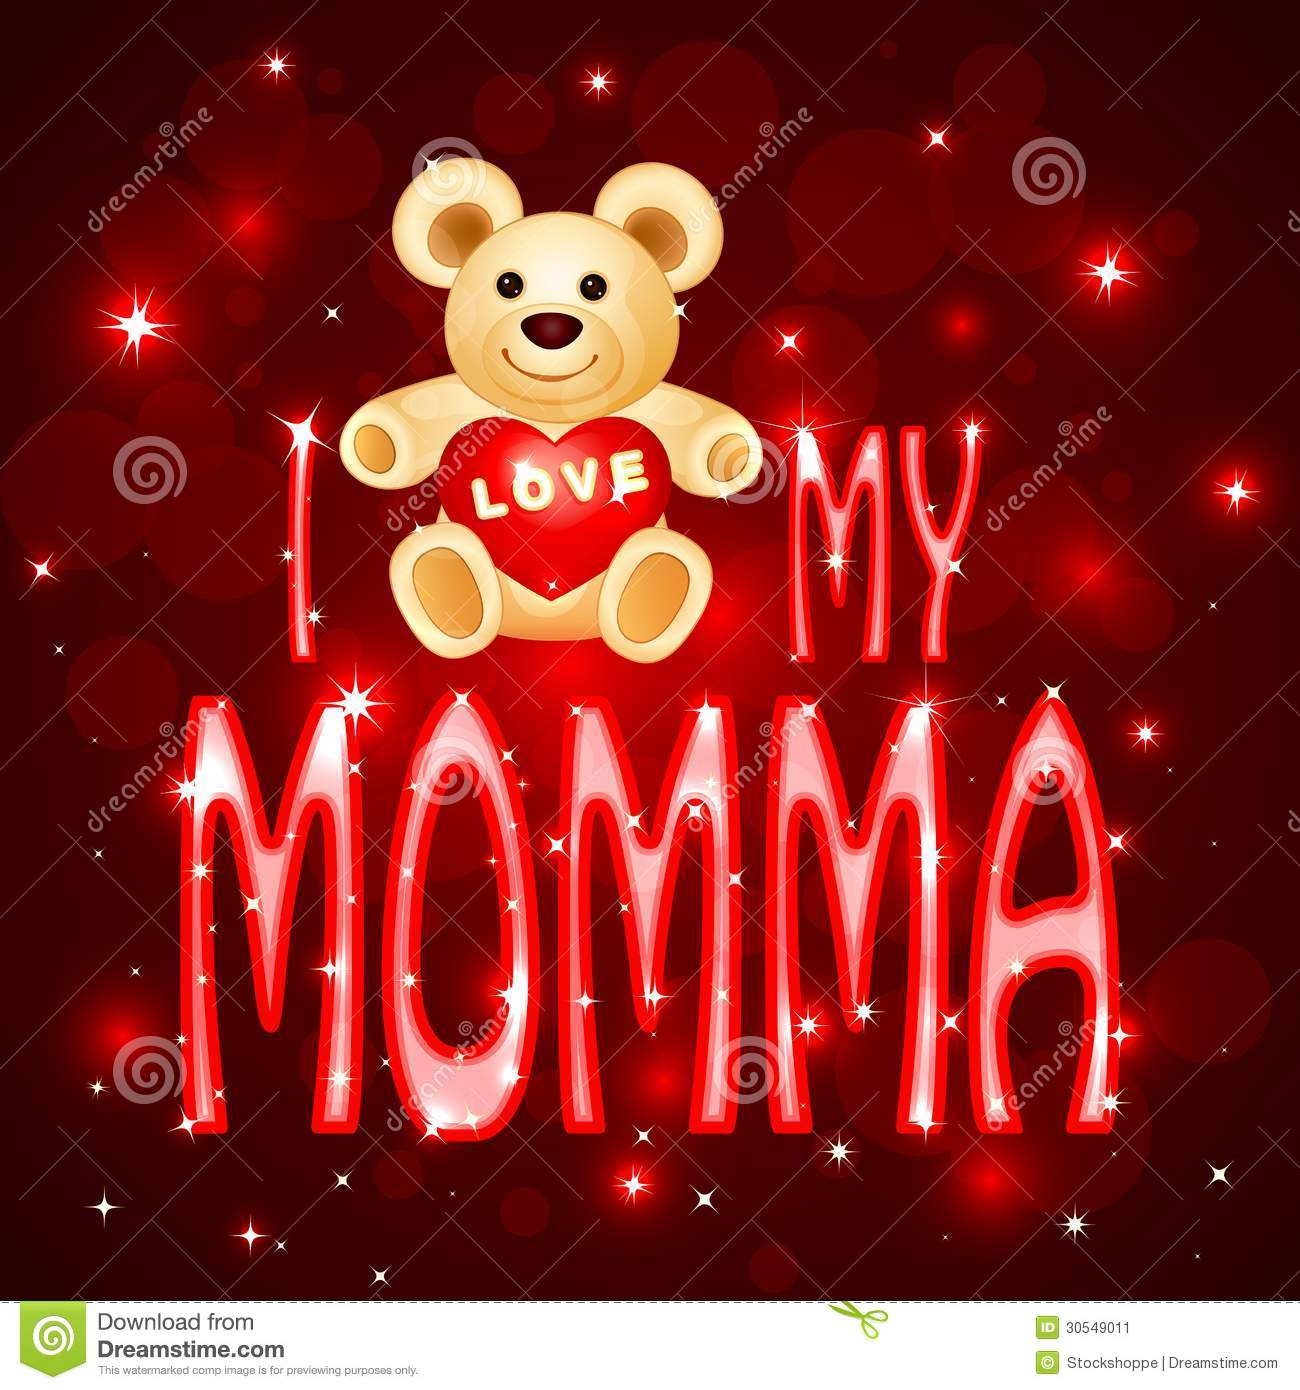 Stock Image Love You Mumma Card Vector Illustration Teddy Bear Momma Image30549011 on nature frames